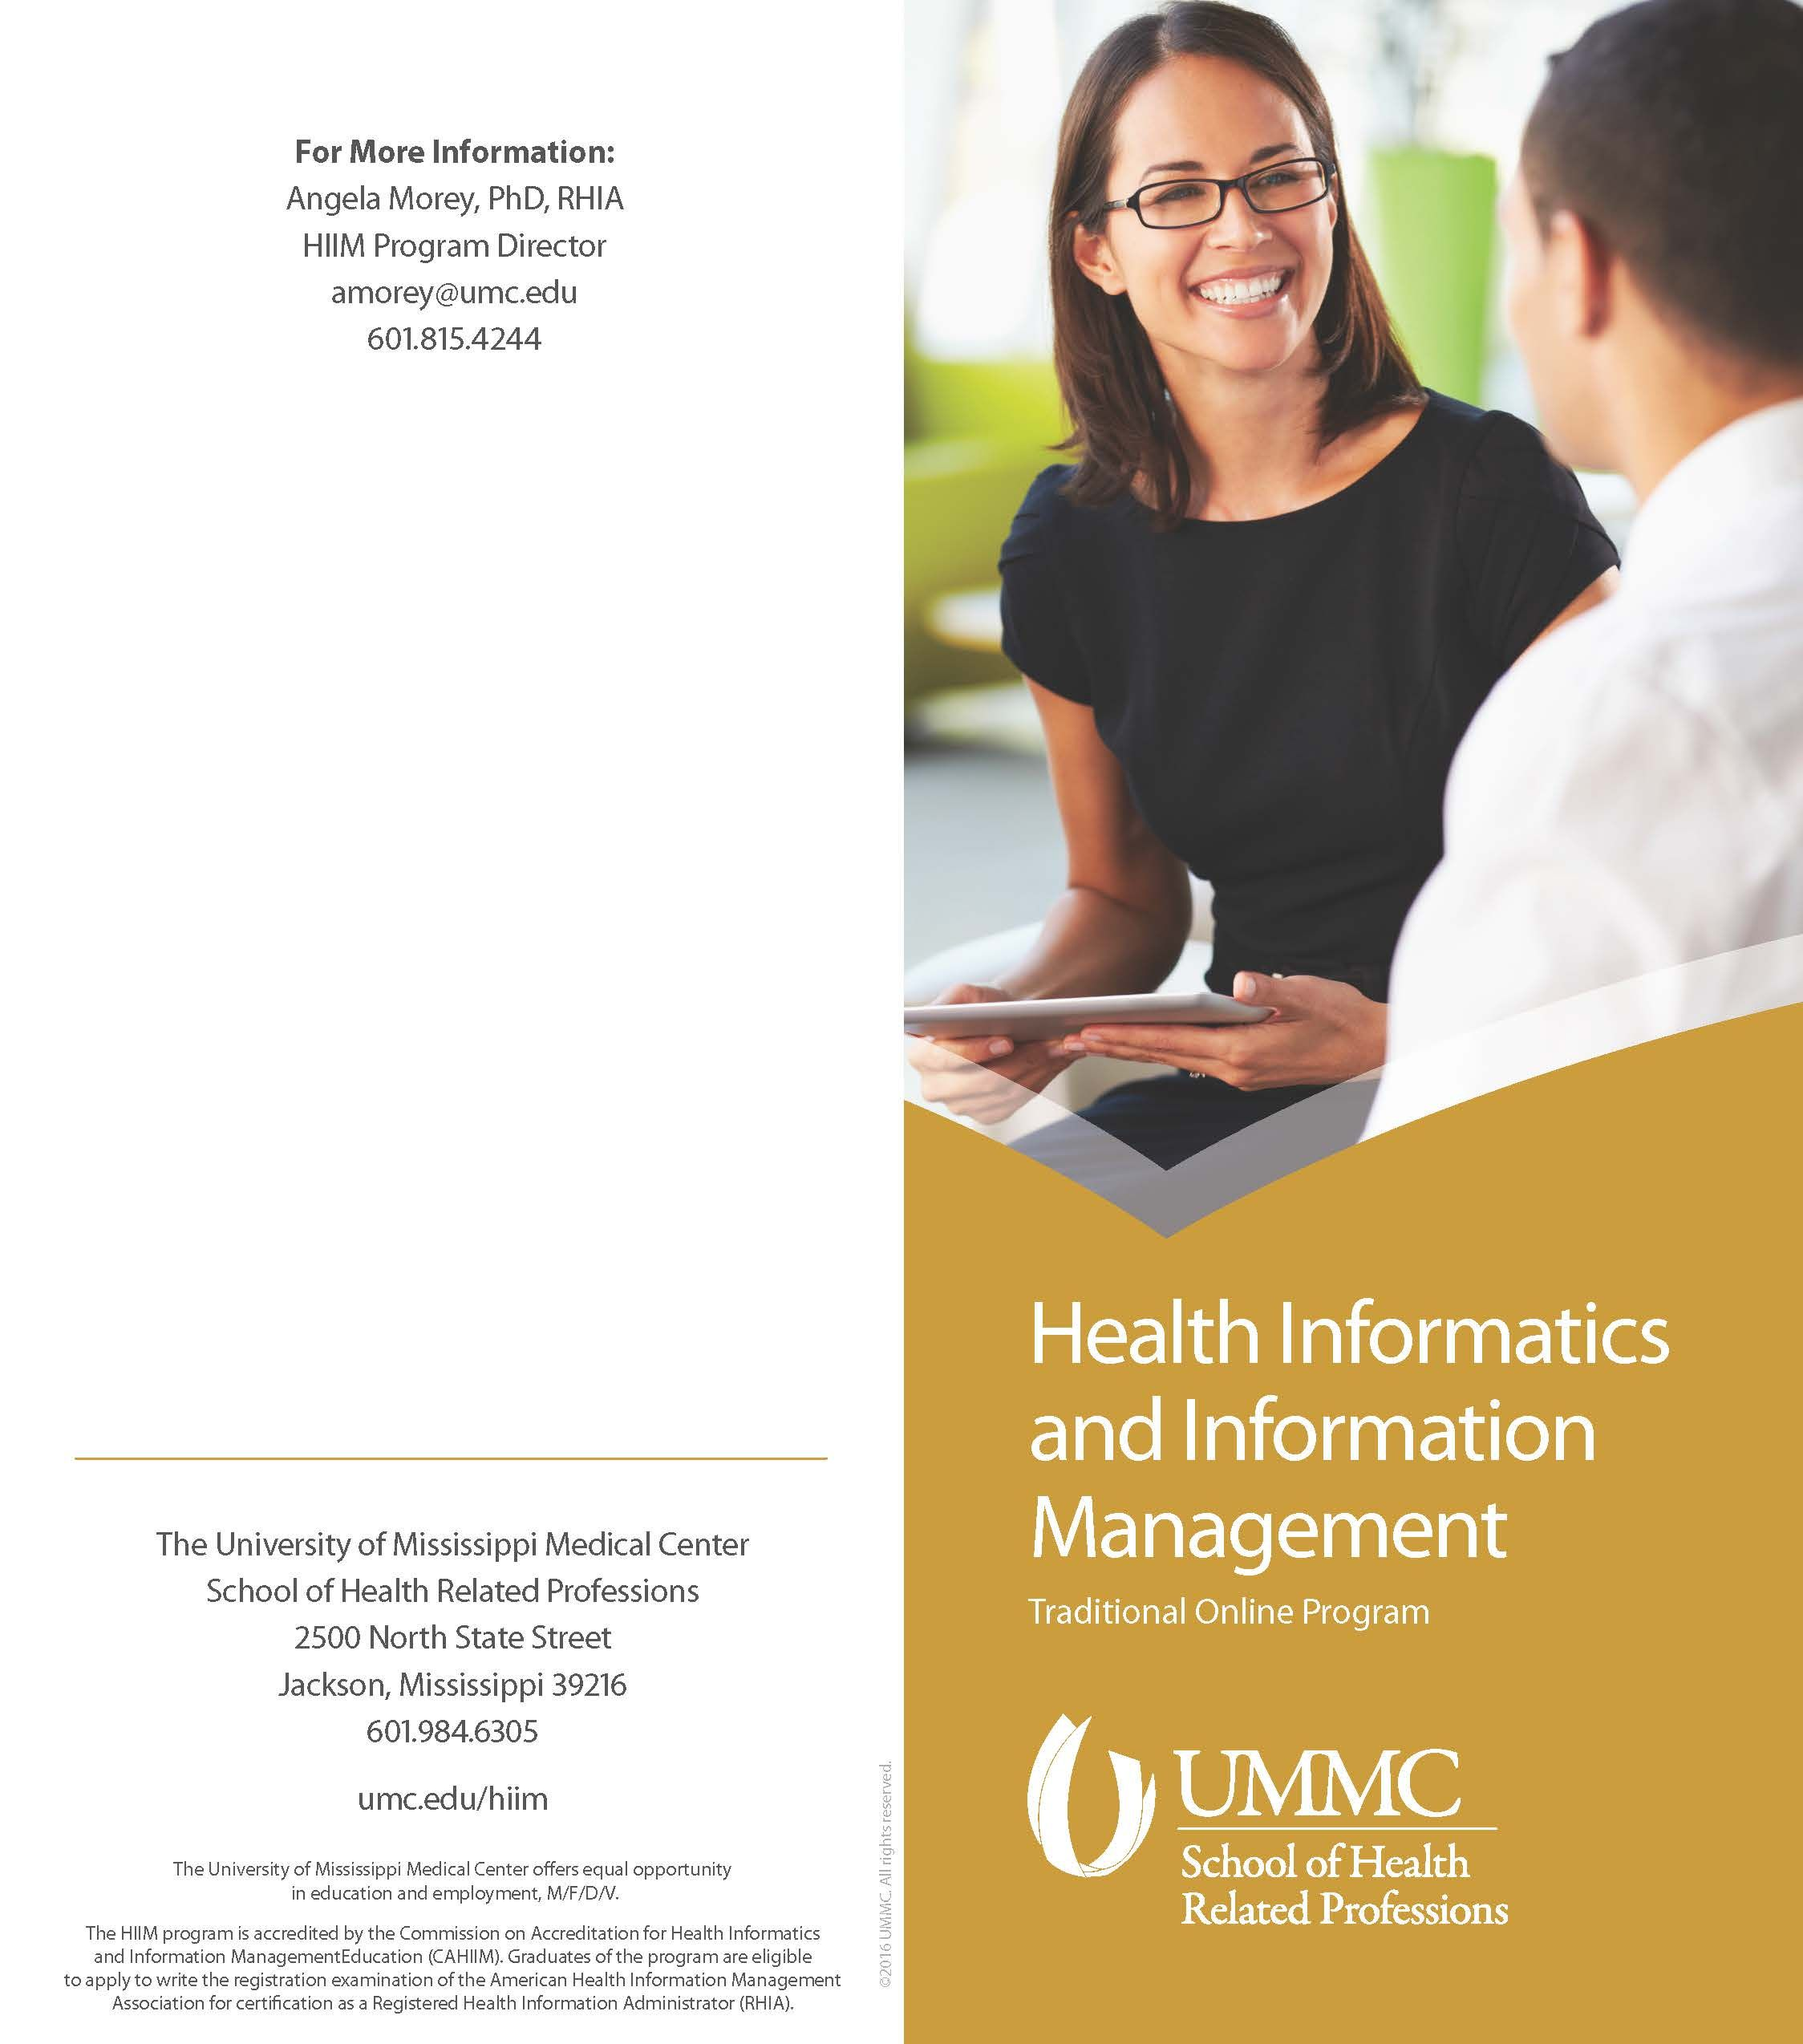 Ummc school of health related professions health informatics and ummc school of health related professions health informatics and information management traditional online program xflitez Choice Image